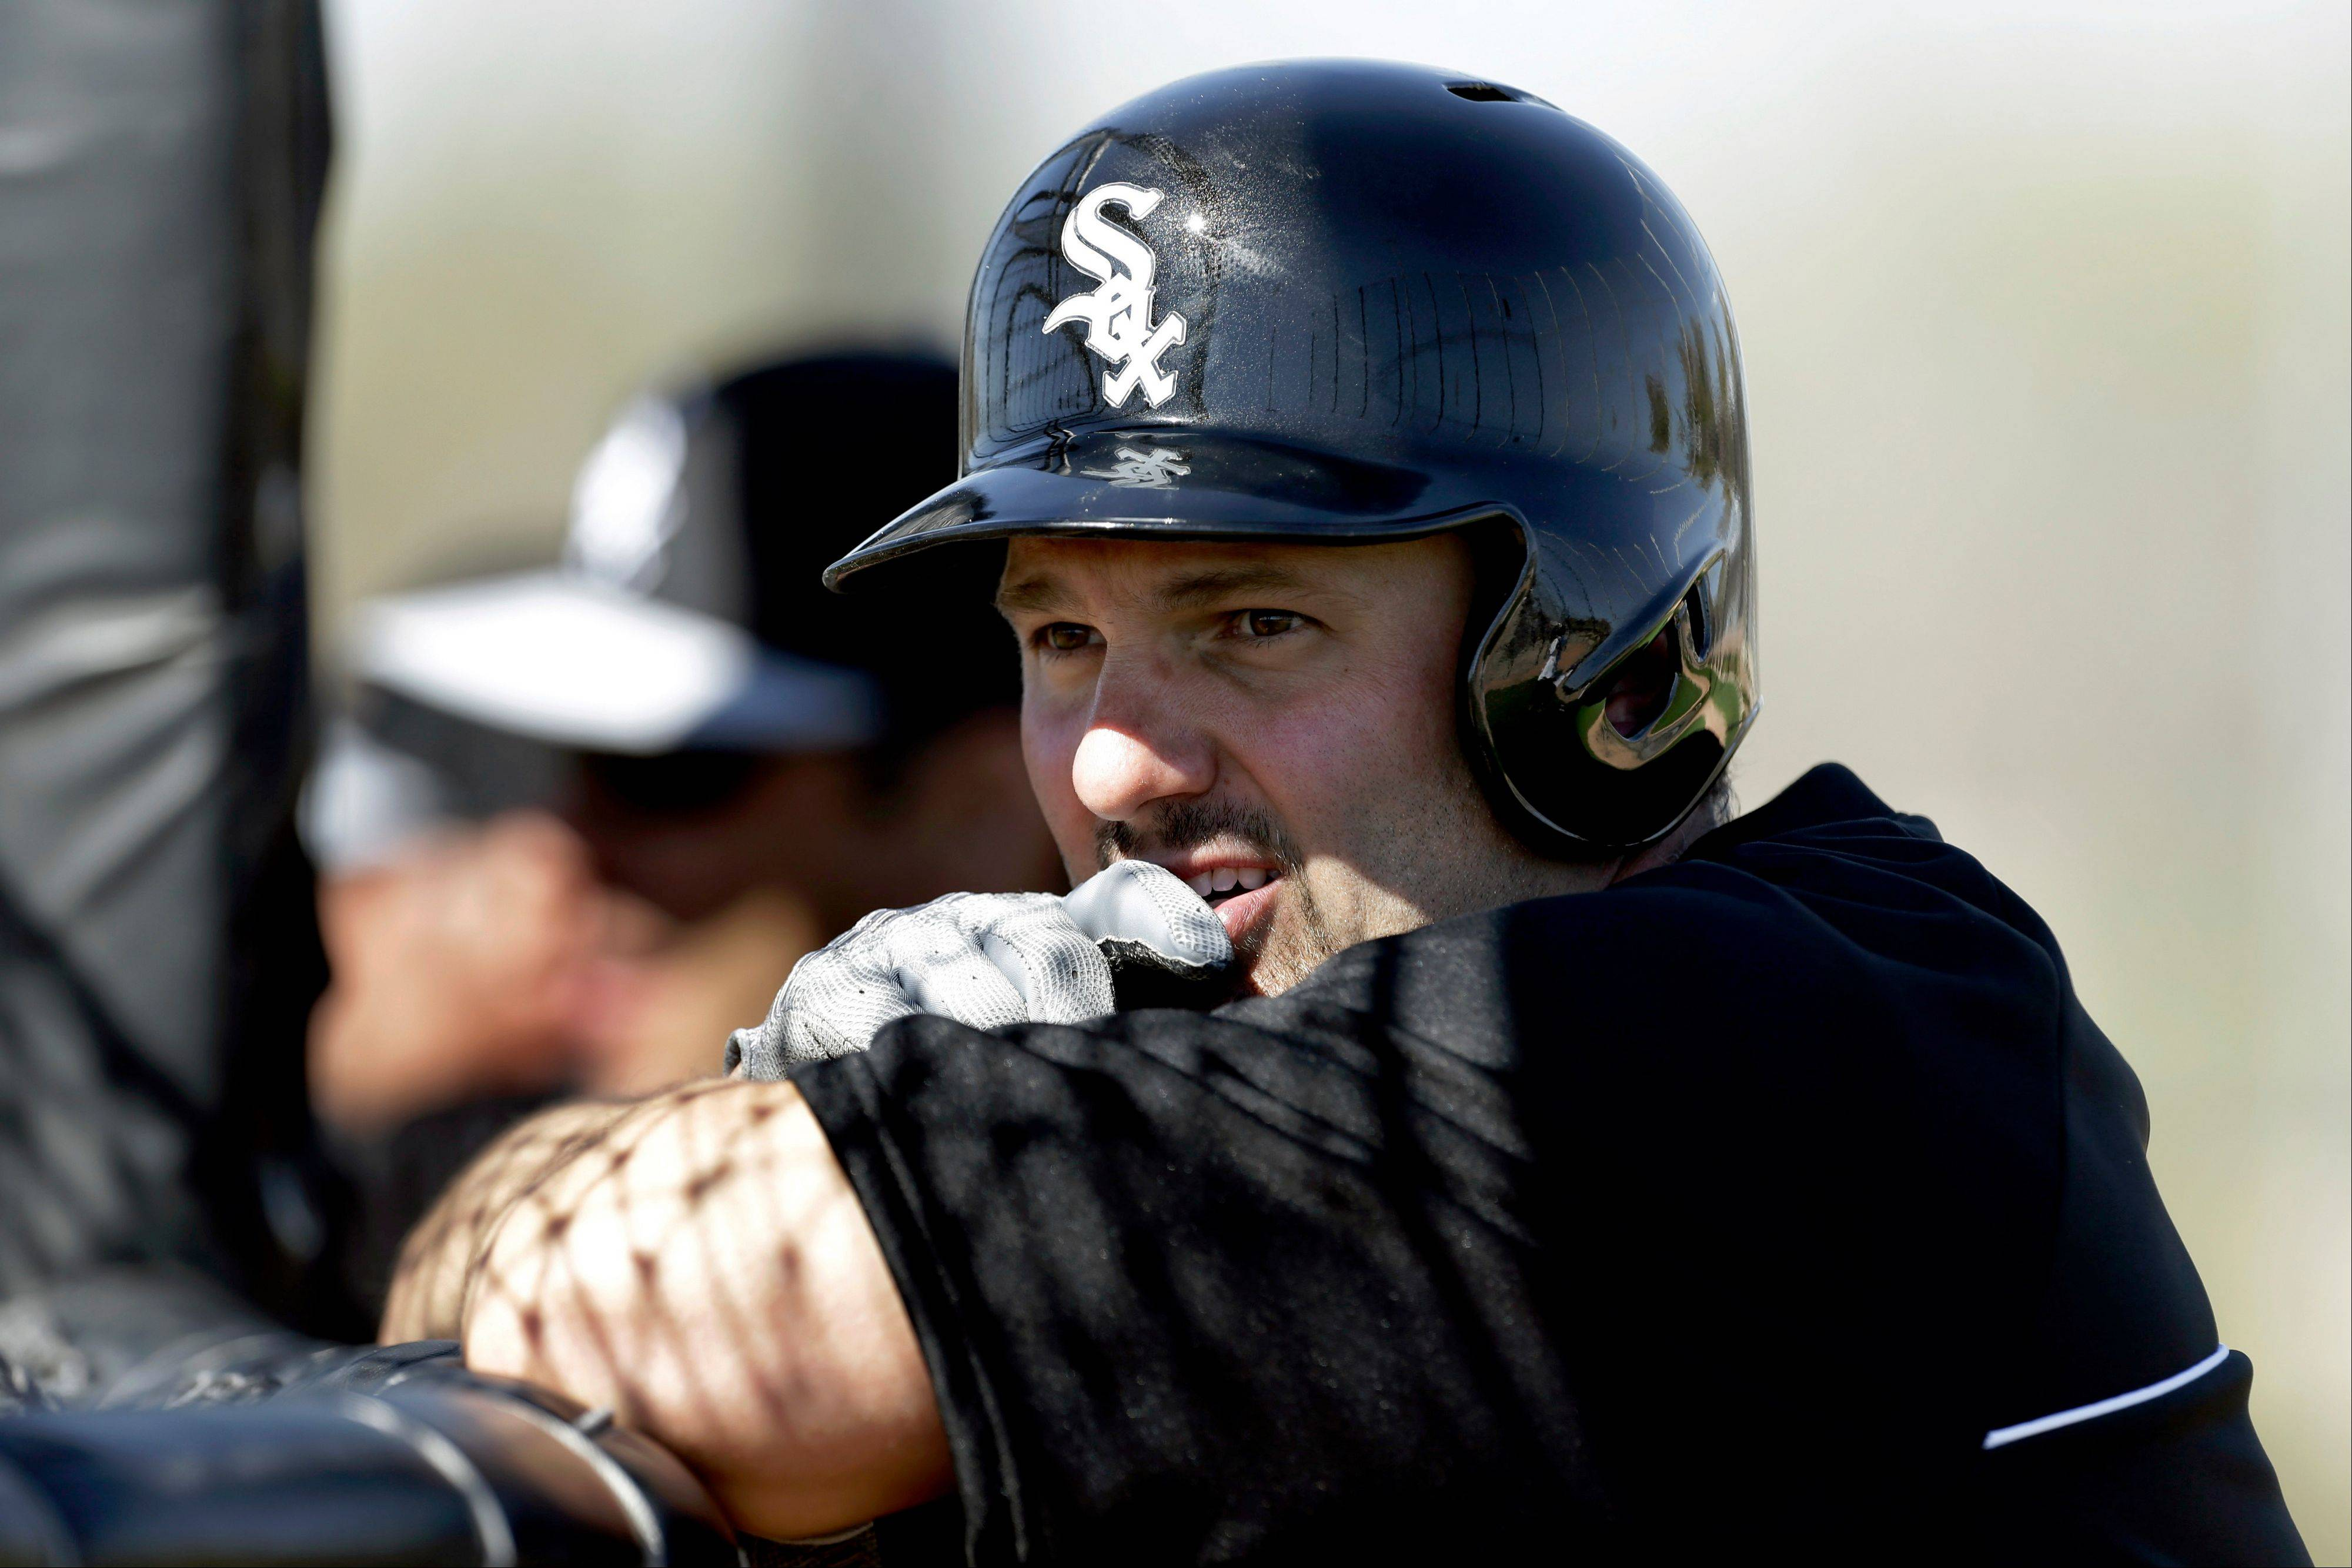 White Sox first baseman Paul Konerko may decide to play another season in Chicago, and the club says it is keeping its options open for him in a limited role.